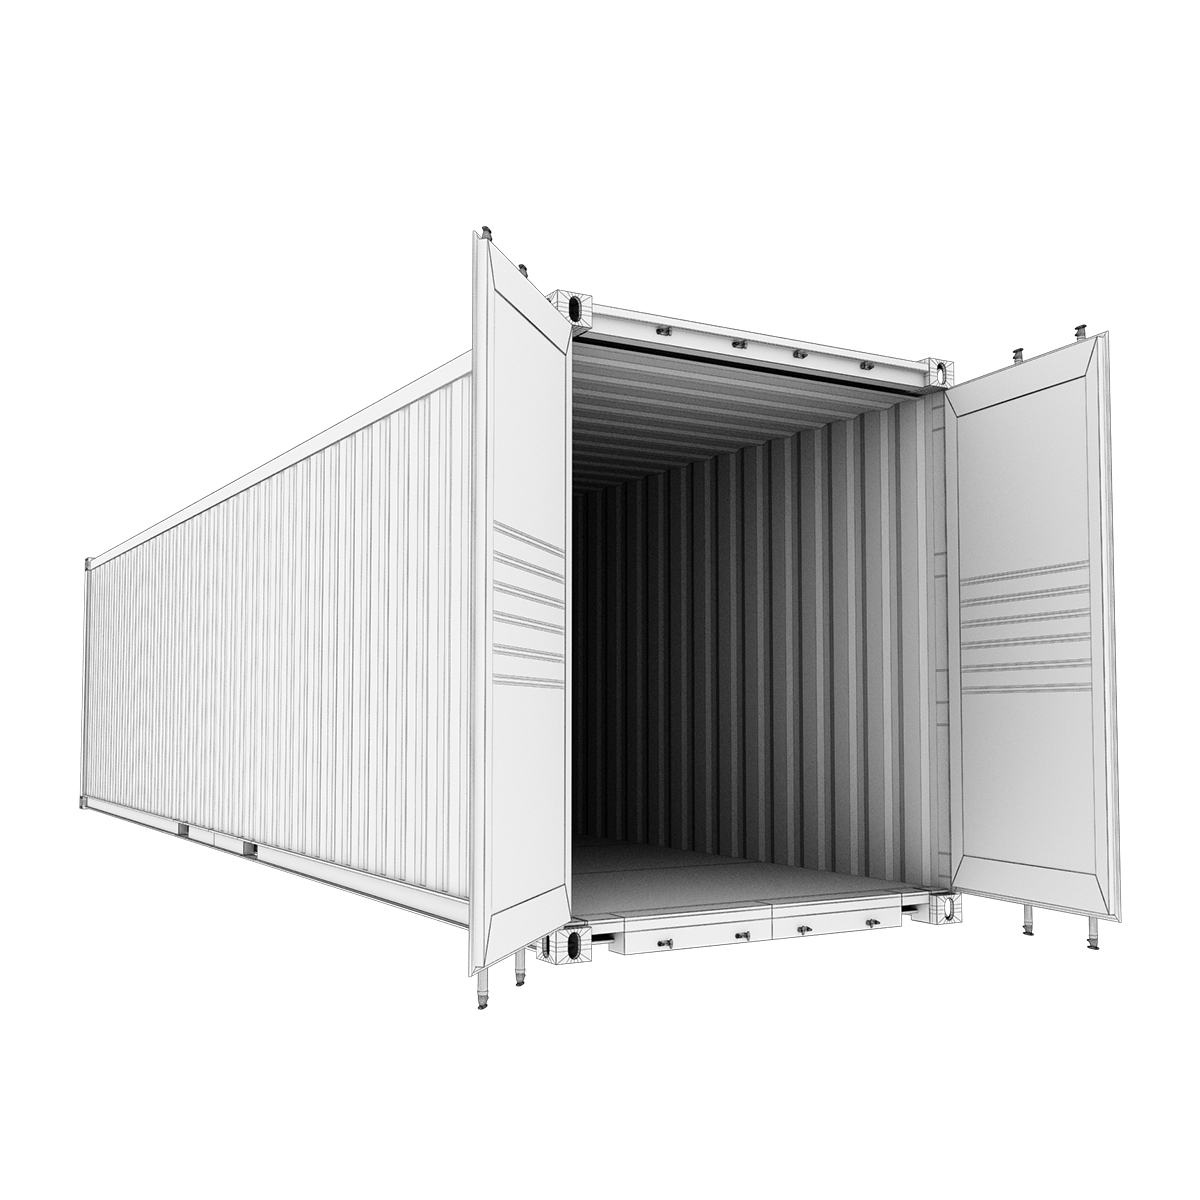 40 feet high cube hapag lloyd shipping container 3d model max fbx ma mb texture obj 278424